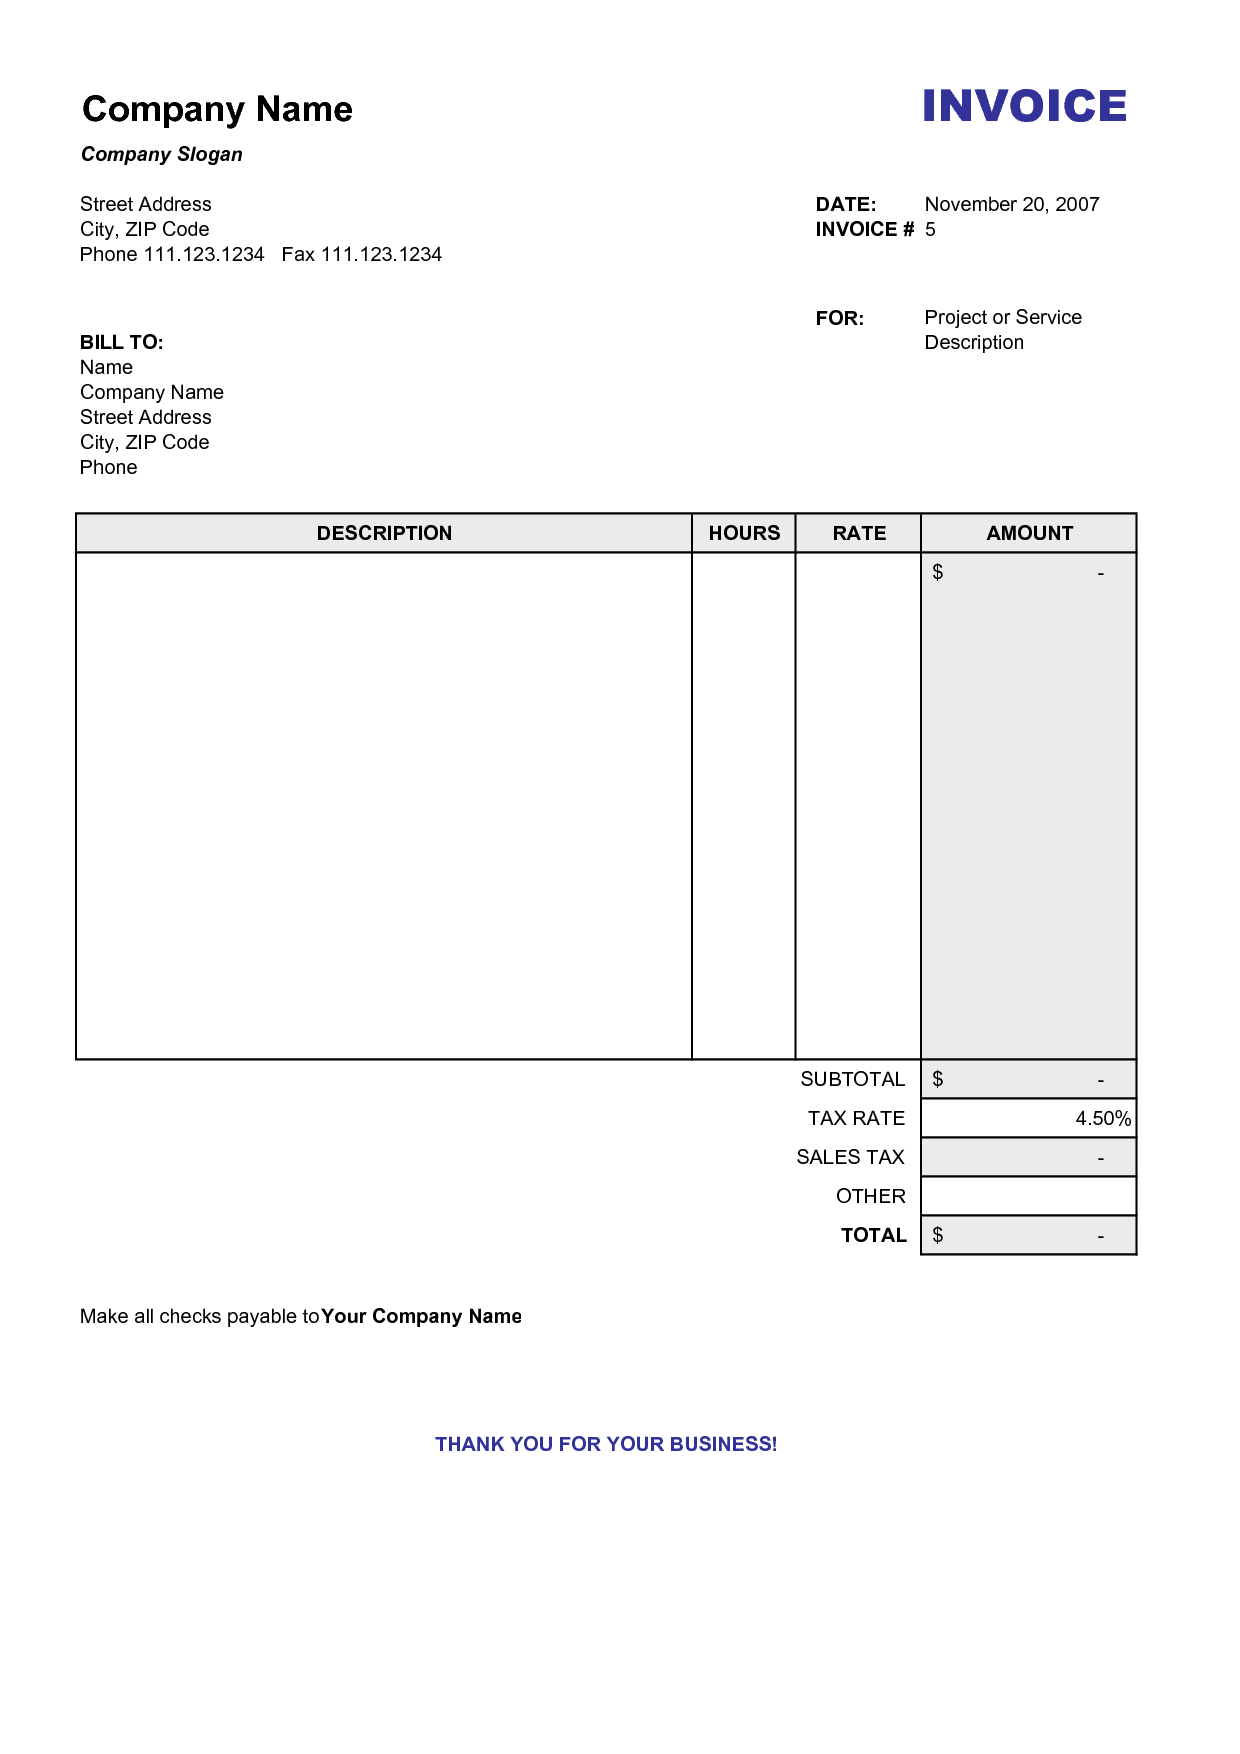 Blank Billing Invoice Scope Of Work Template Organization - Work hours invoice template